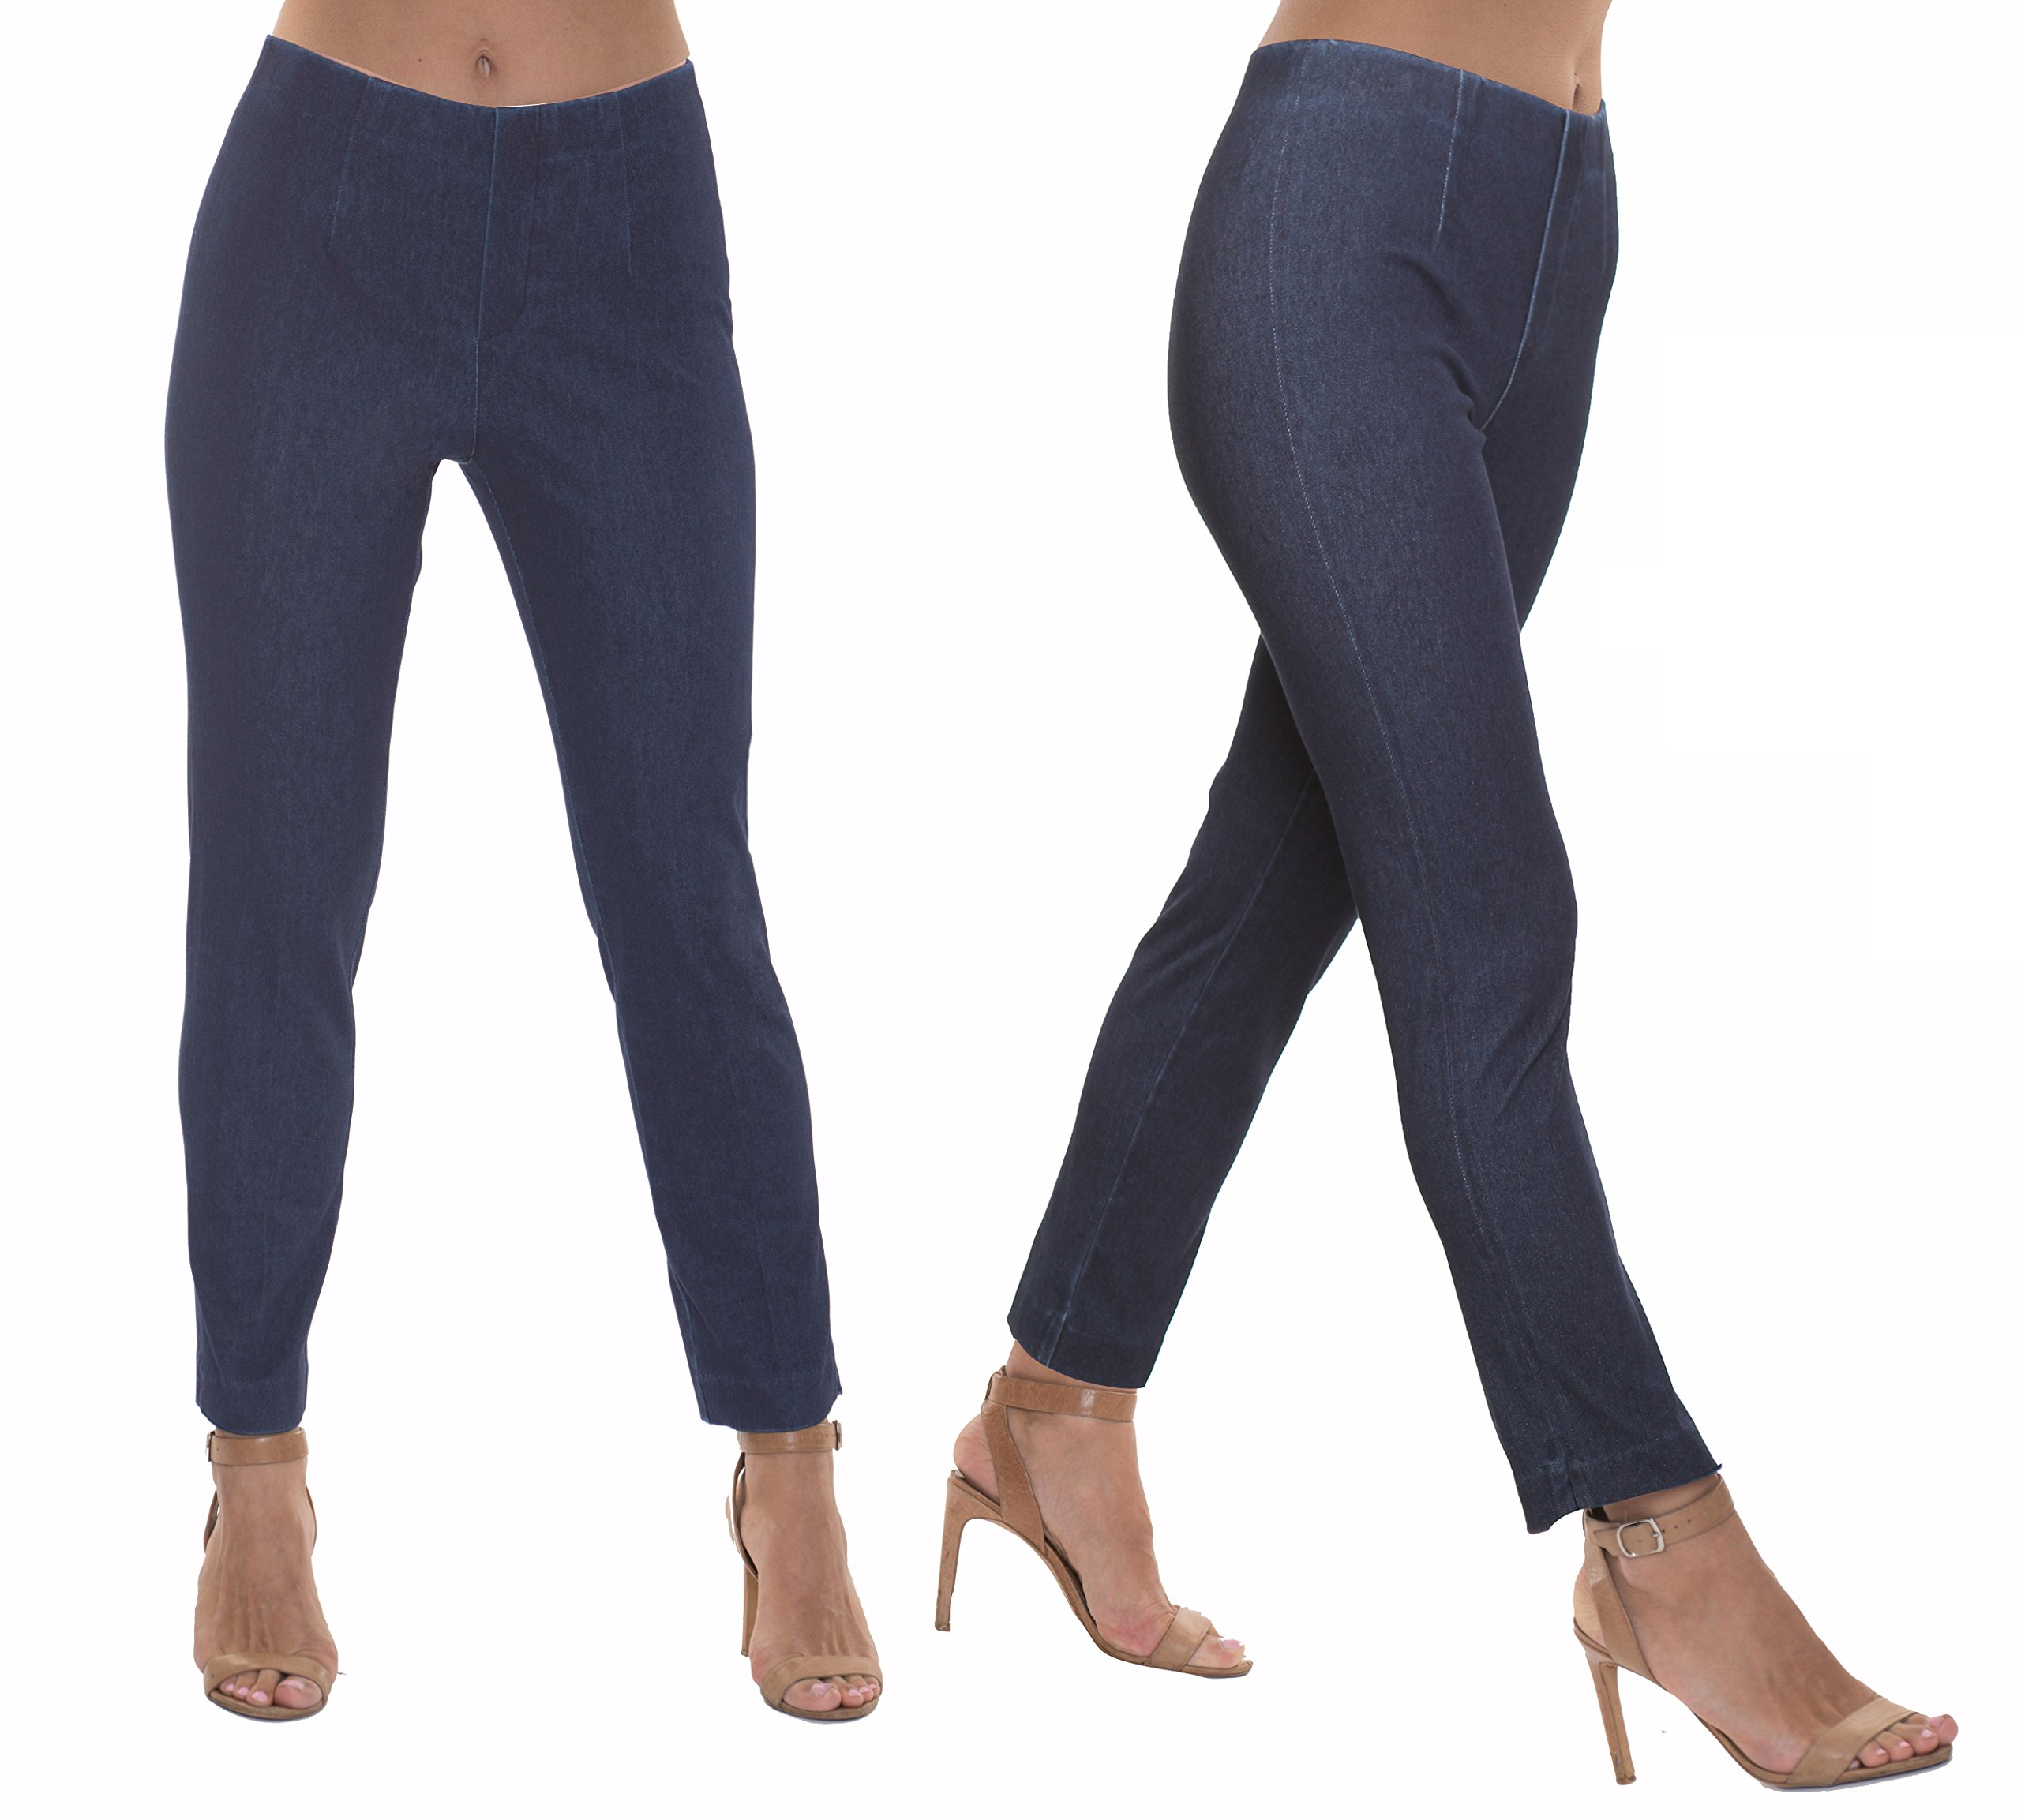 Lior Paris DENIM REINVENTED Sasha Denim Pants (Blue Denim,8) by Lior paris